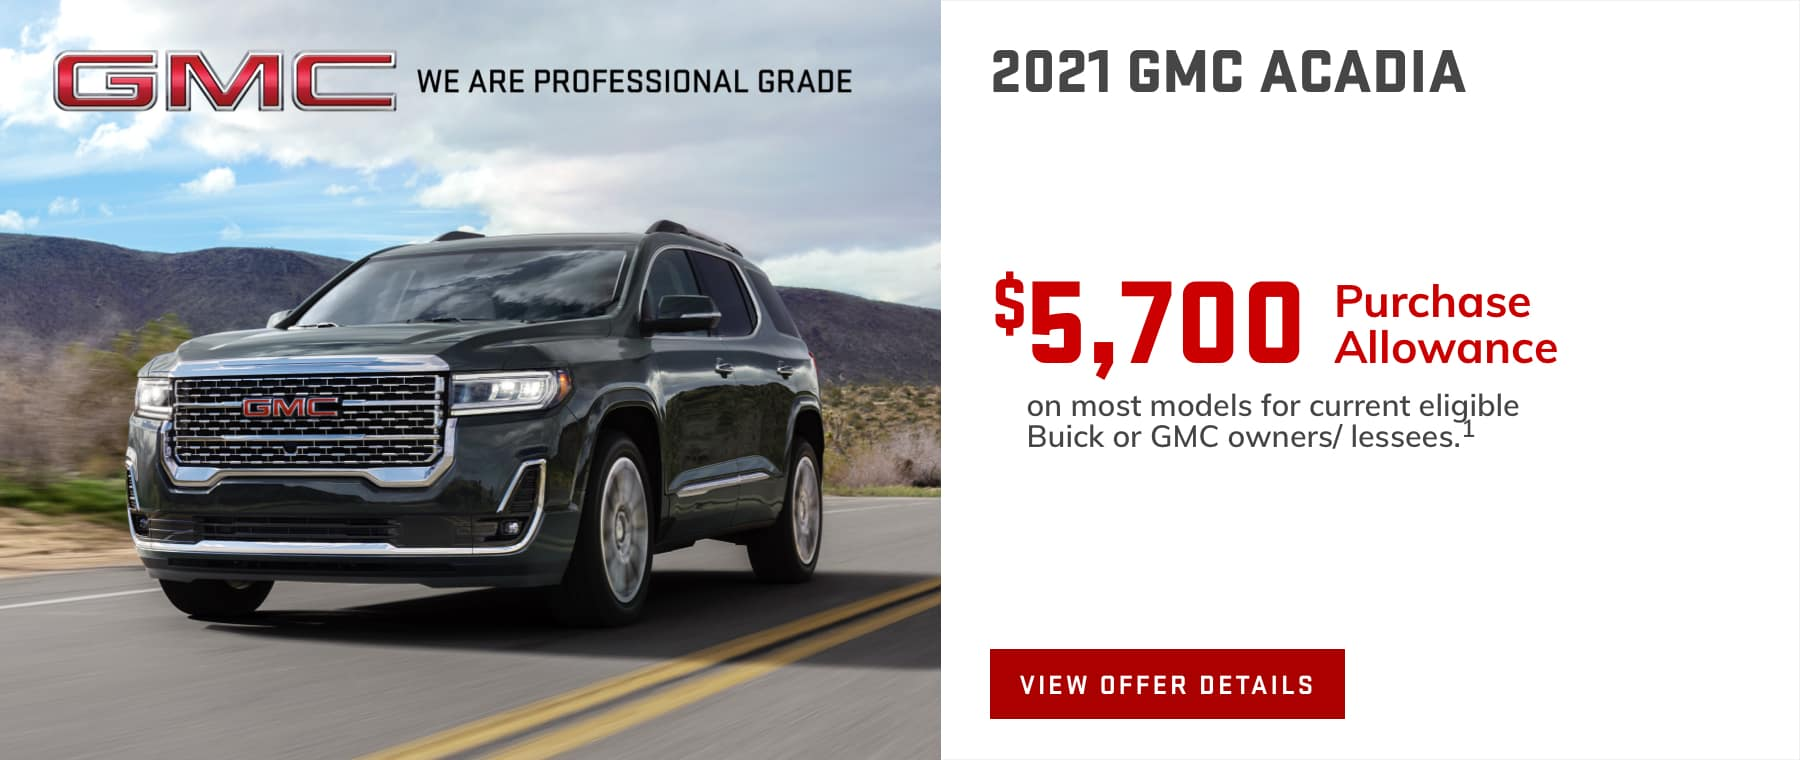 $5,700 Purchase Allowance on most models for current eligible Buick or GMC owners/lessees.1